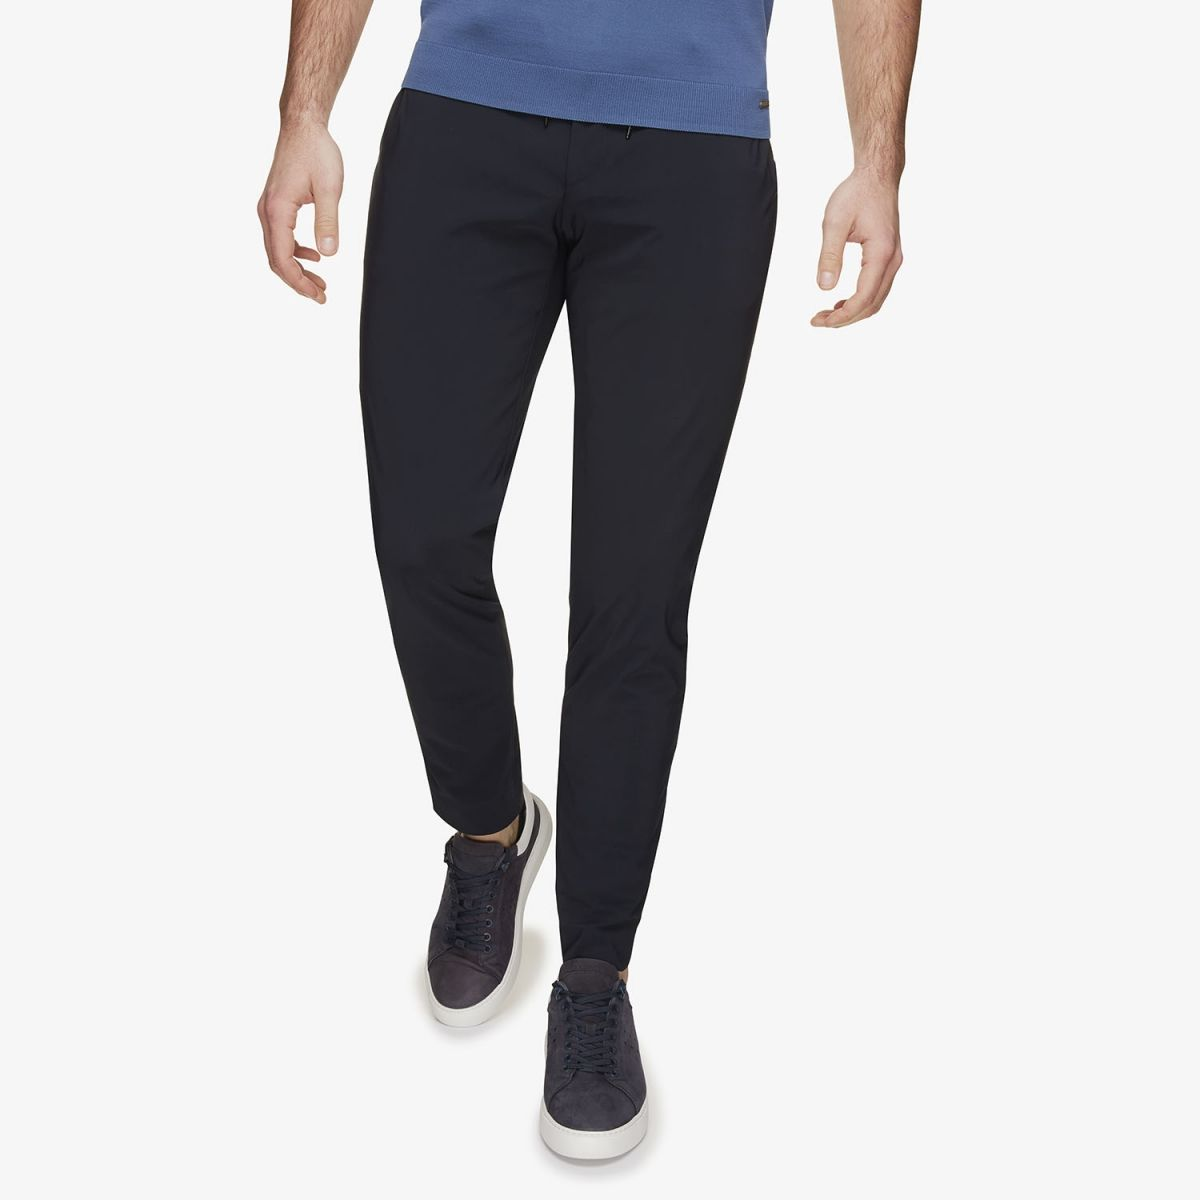 Dynamic Stretch Pantalon koord Donkerblauw